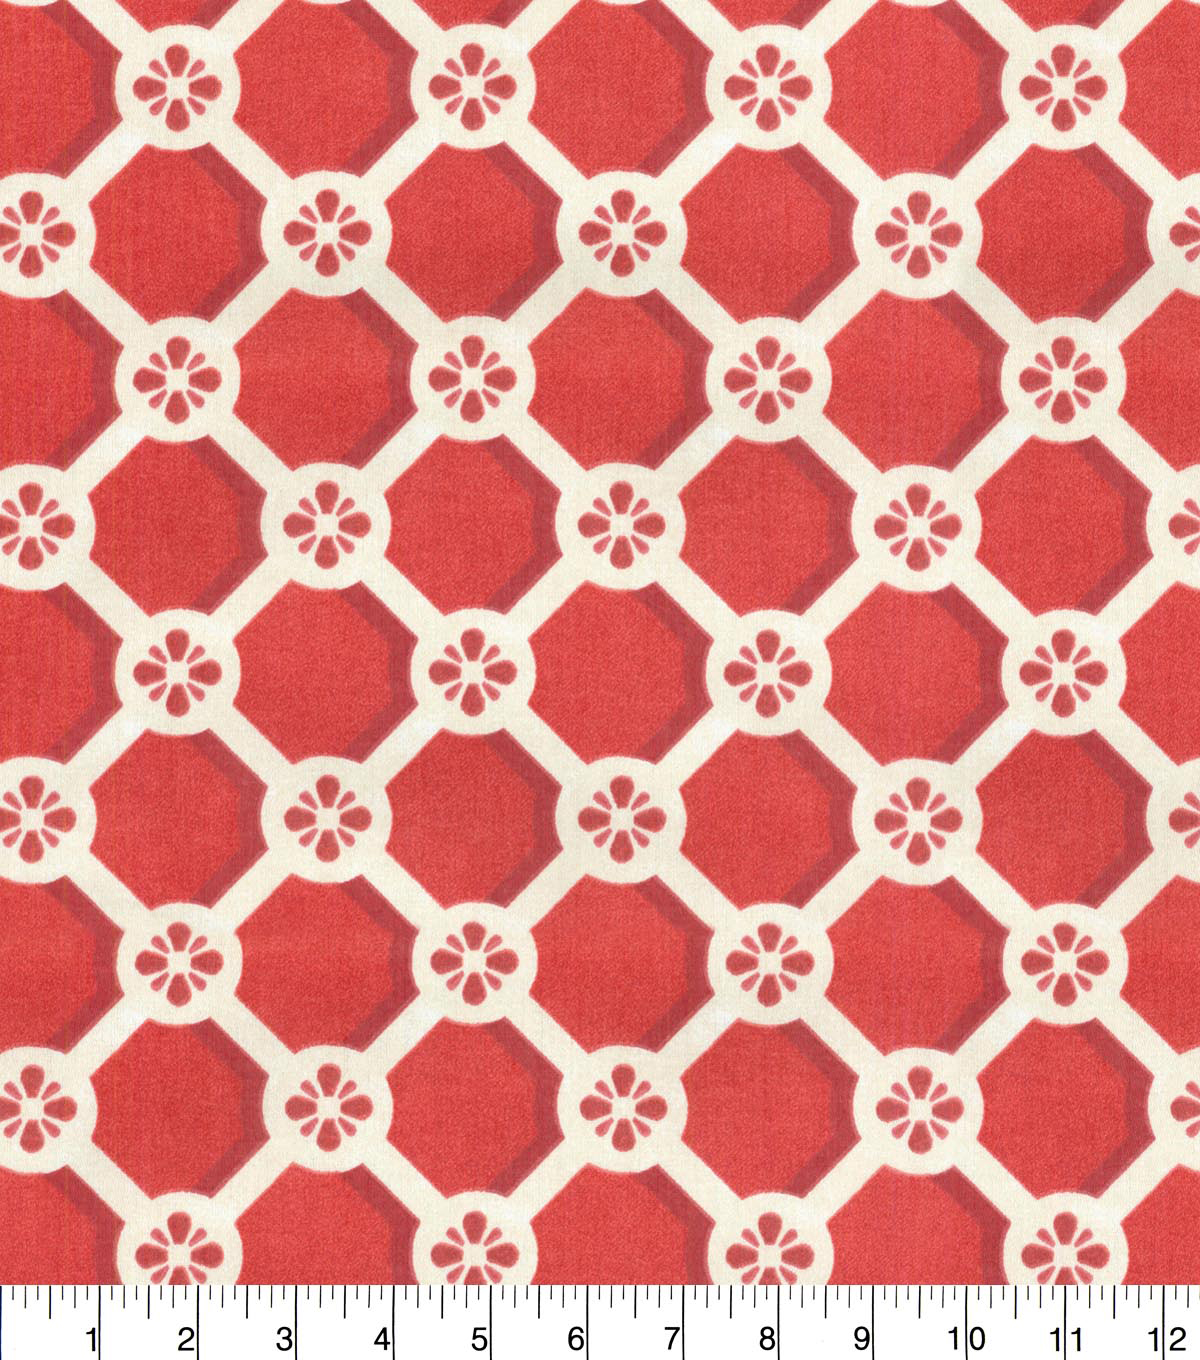 Home Decor 8\u0022x8\u0022 Fabric Swatch-P/K Lifestyles Trellis Caprice Cinnabar